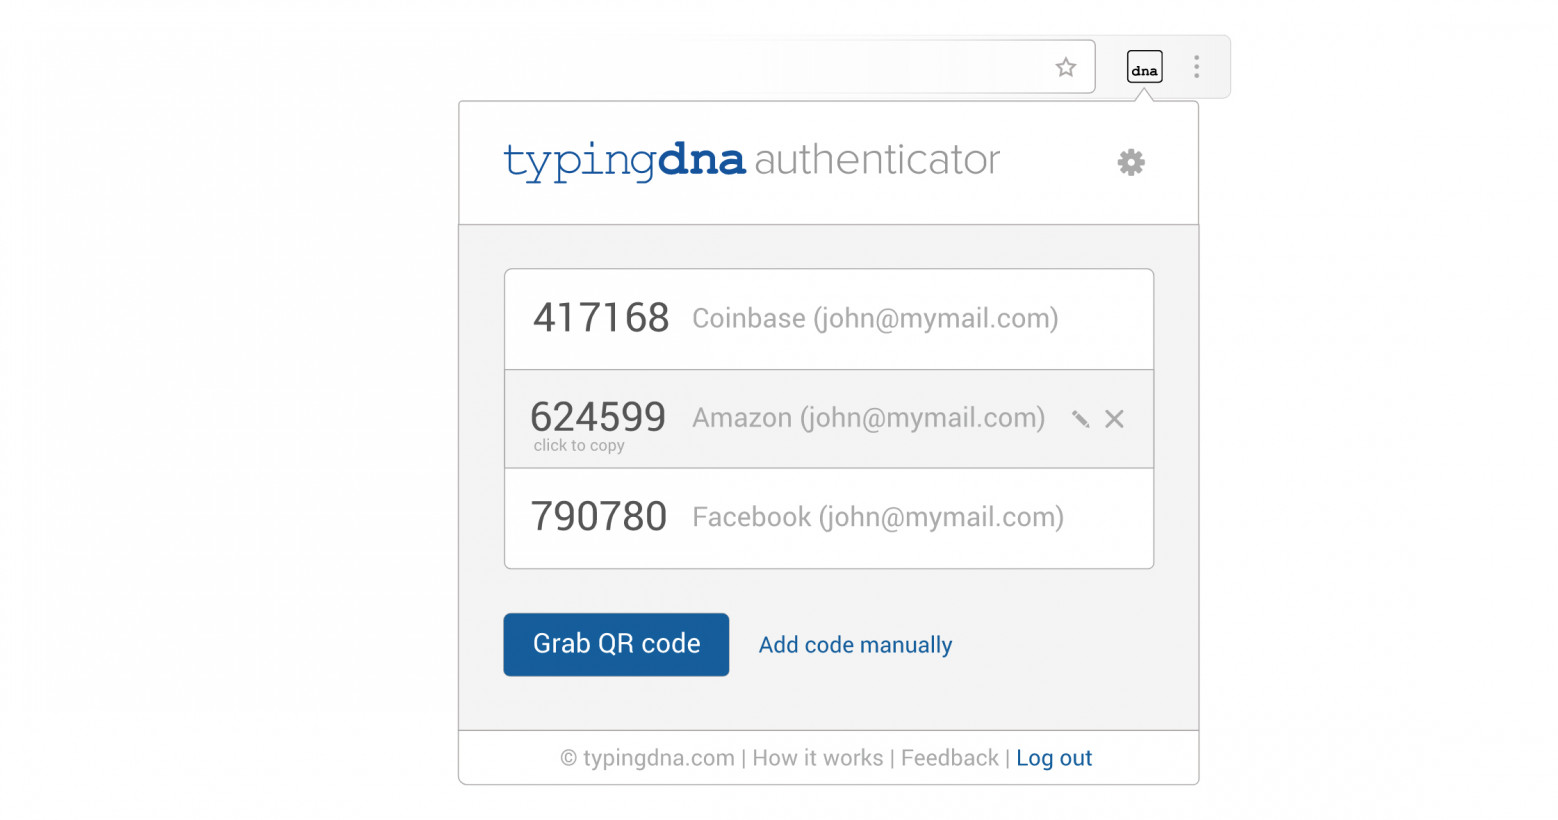 This Chrome extension enables 2FA logins by watching you type